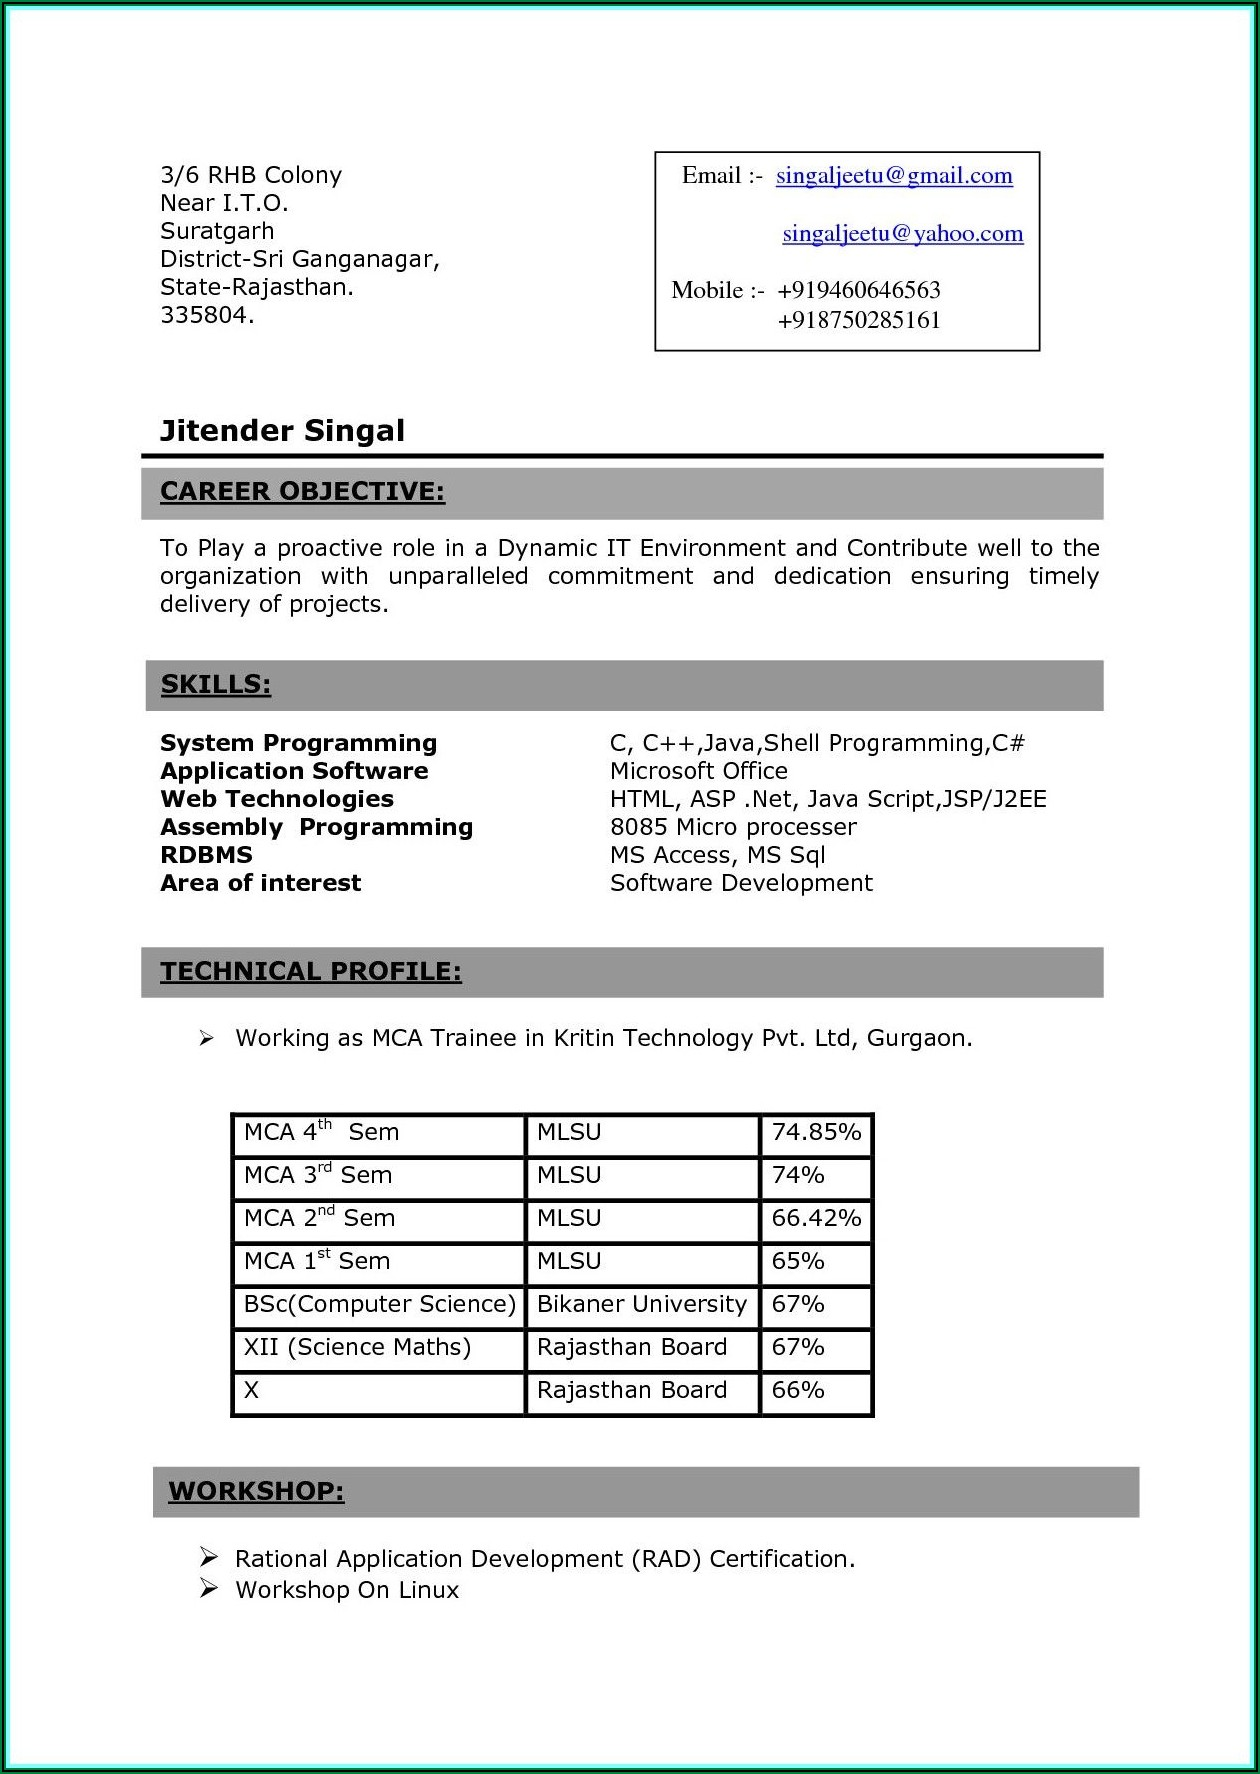 Resume Format For Freshers Bsc Computer Science Pdf Free Download